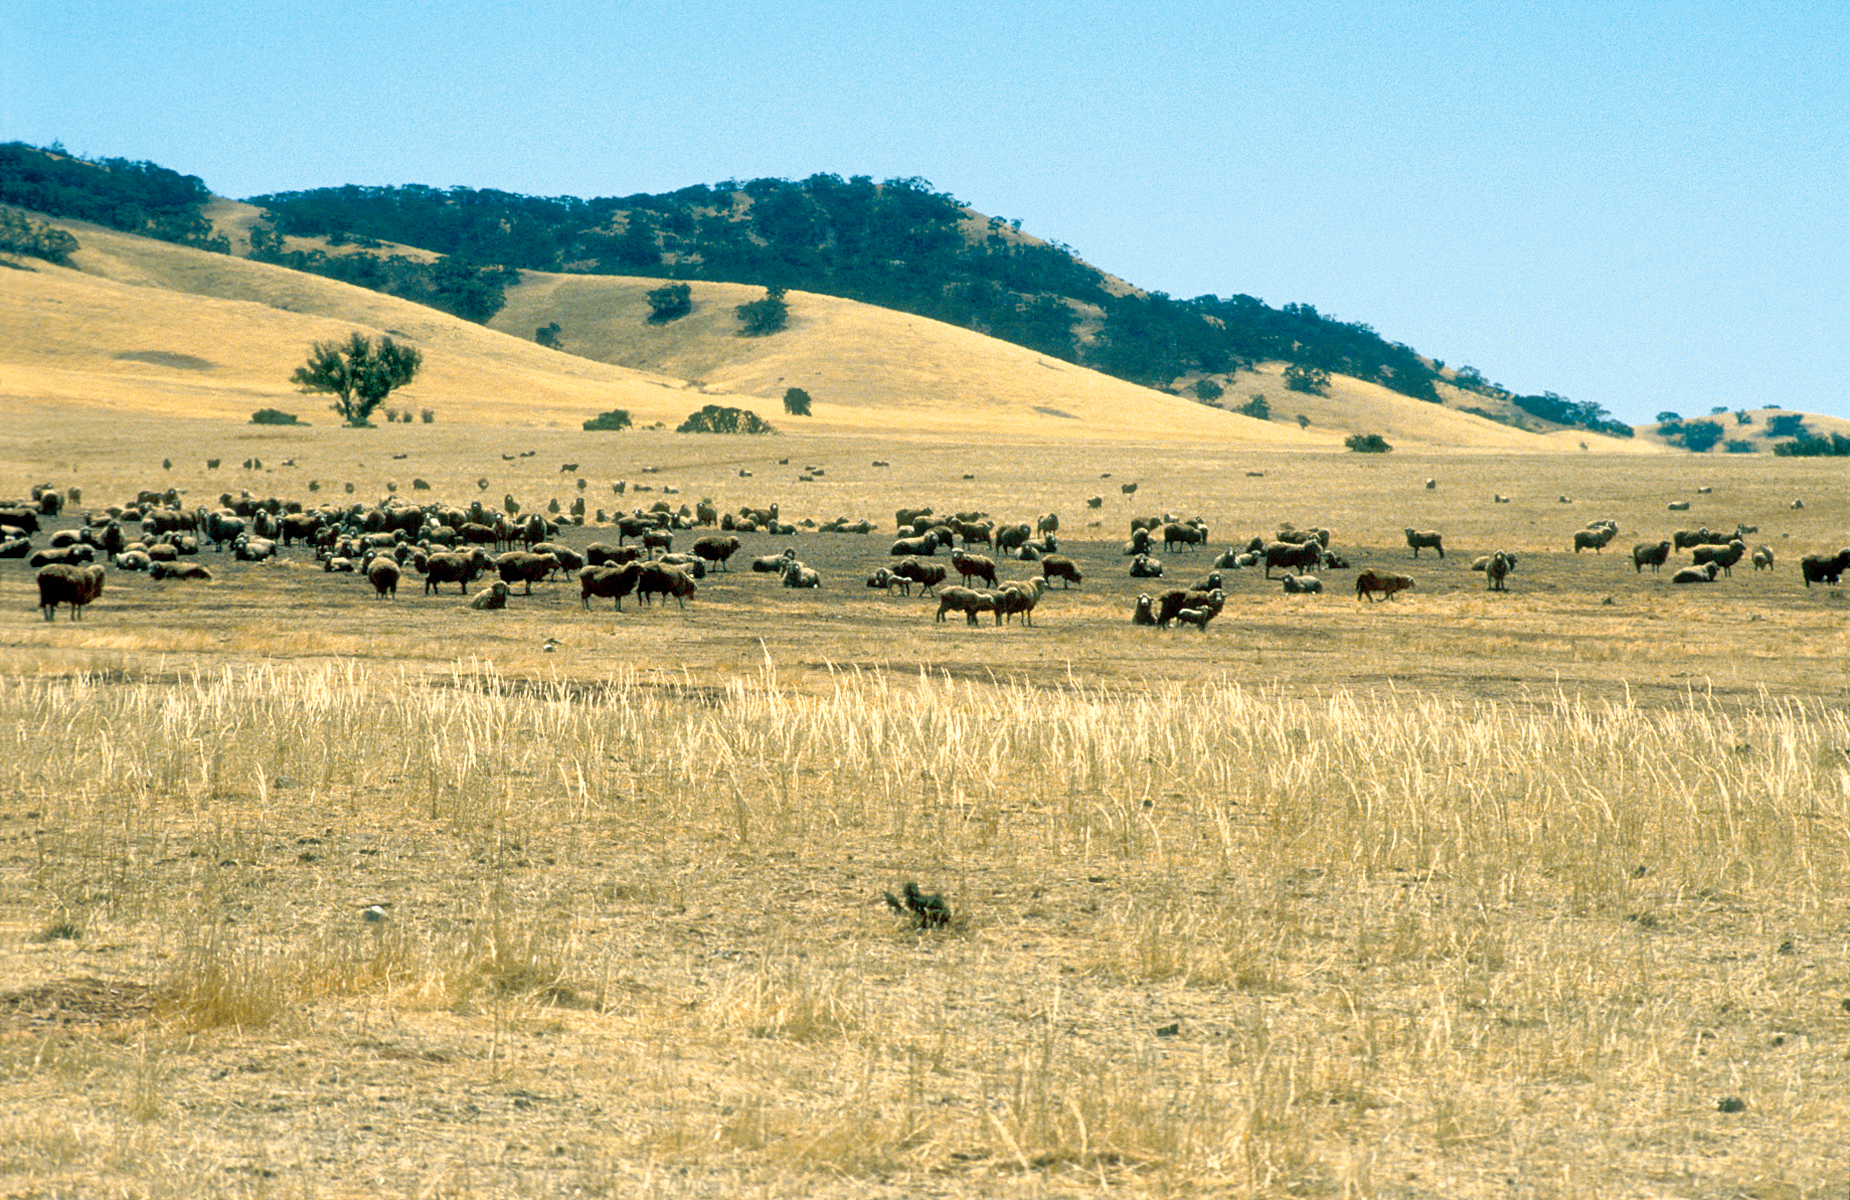 Sheep in semi arid region north east of Burra, South Australia. 1992.  Dry landcsape featuring flock of sheep